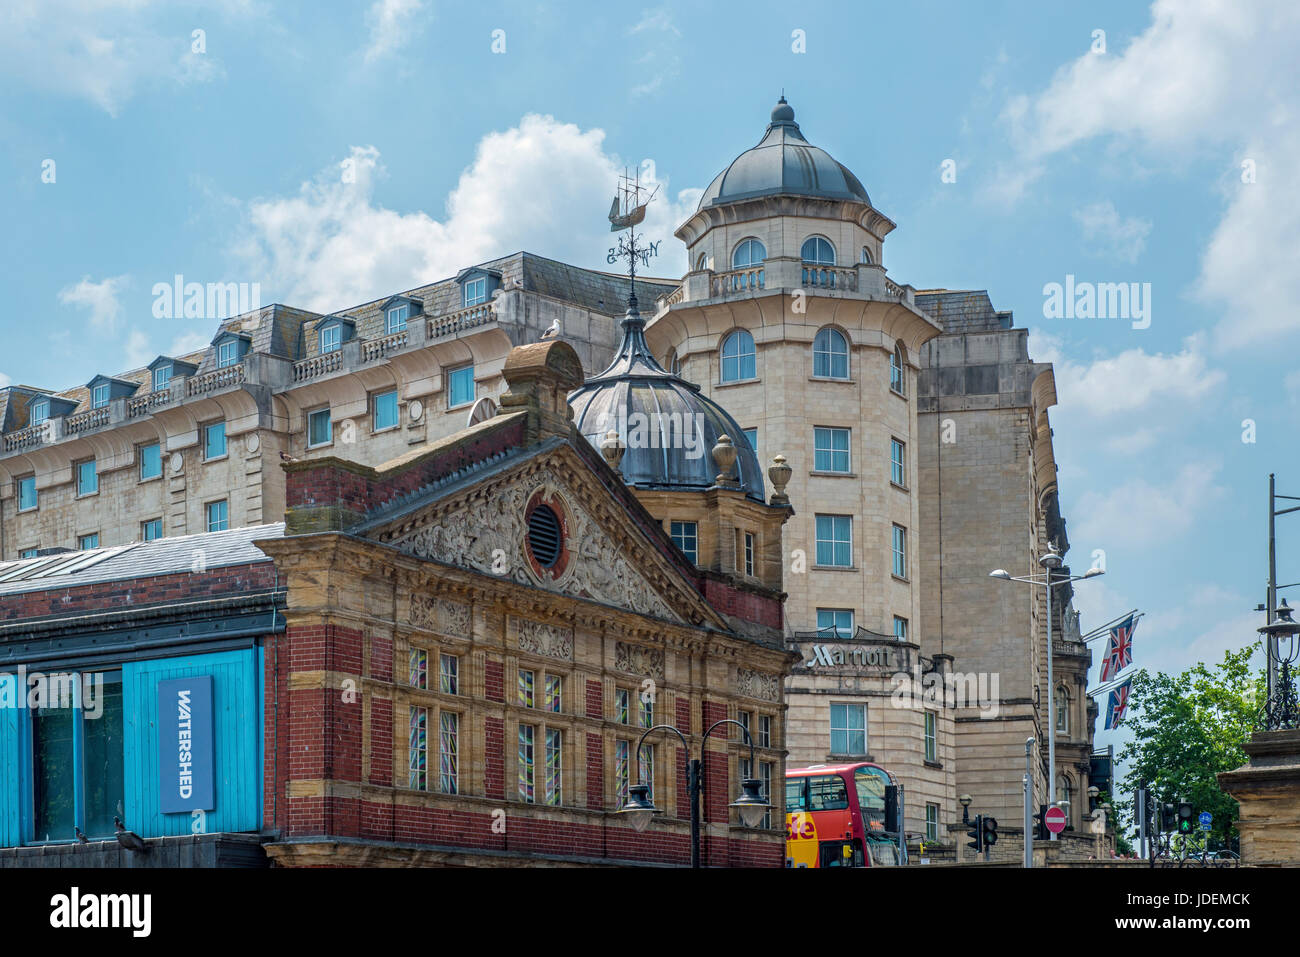 Watershed Cinema and Marriott Hotel Bristol City Centre - Stock Image